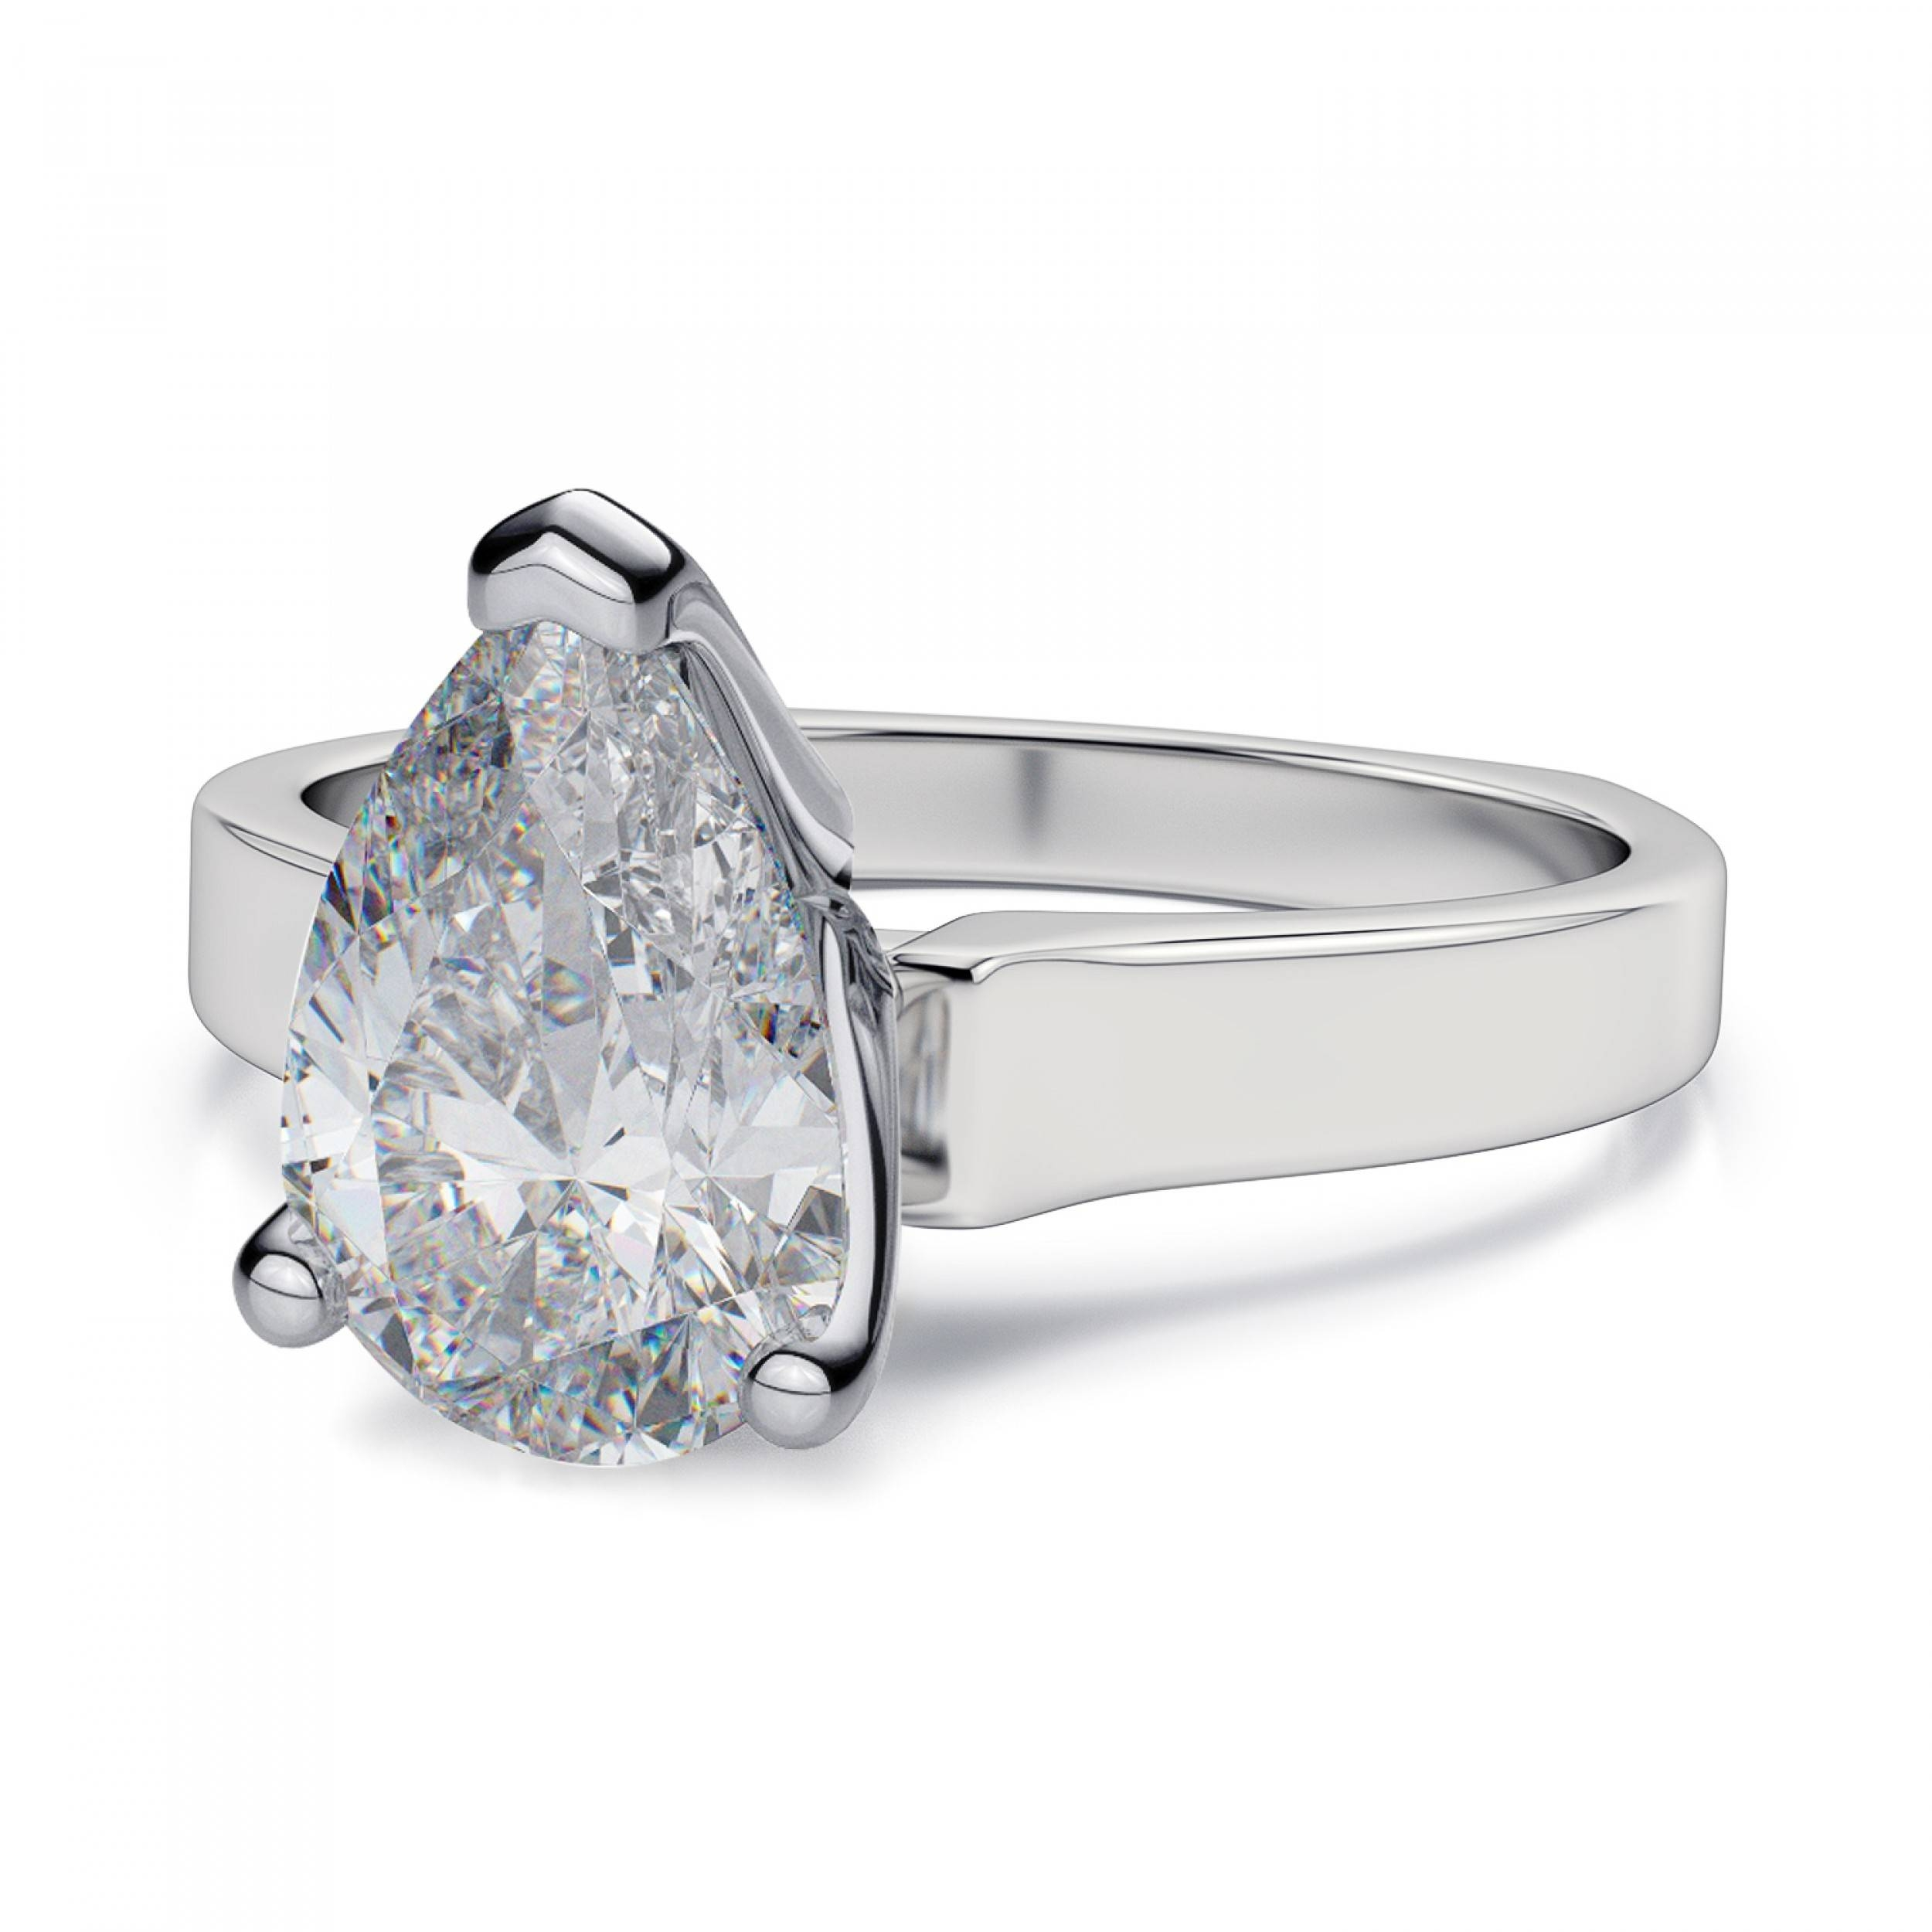 Shank Cathedral Pear Diamond Ring – Platinum Within Pear Shaped Diamond Settings Engagement Rings (View 15 of 15)